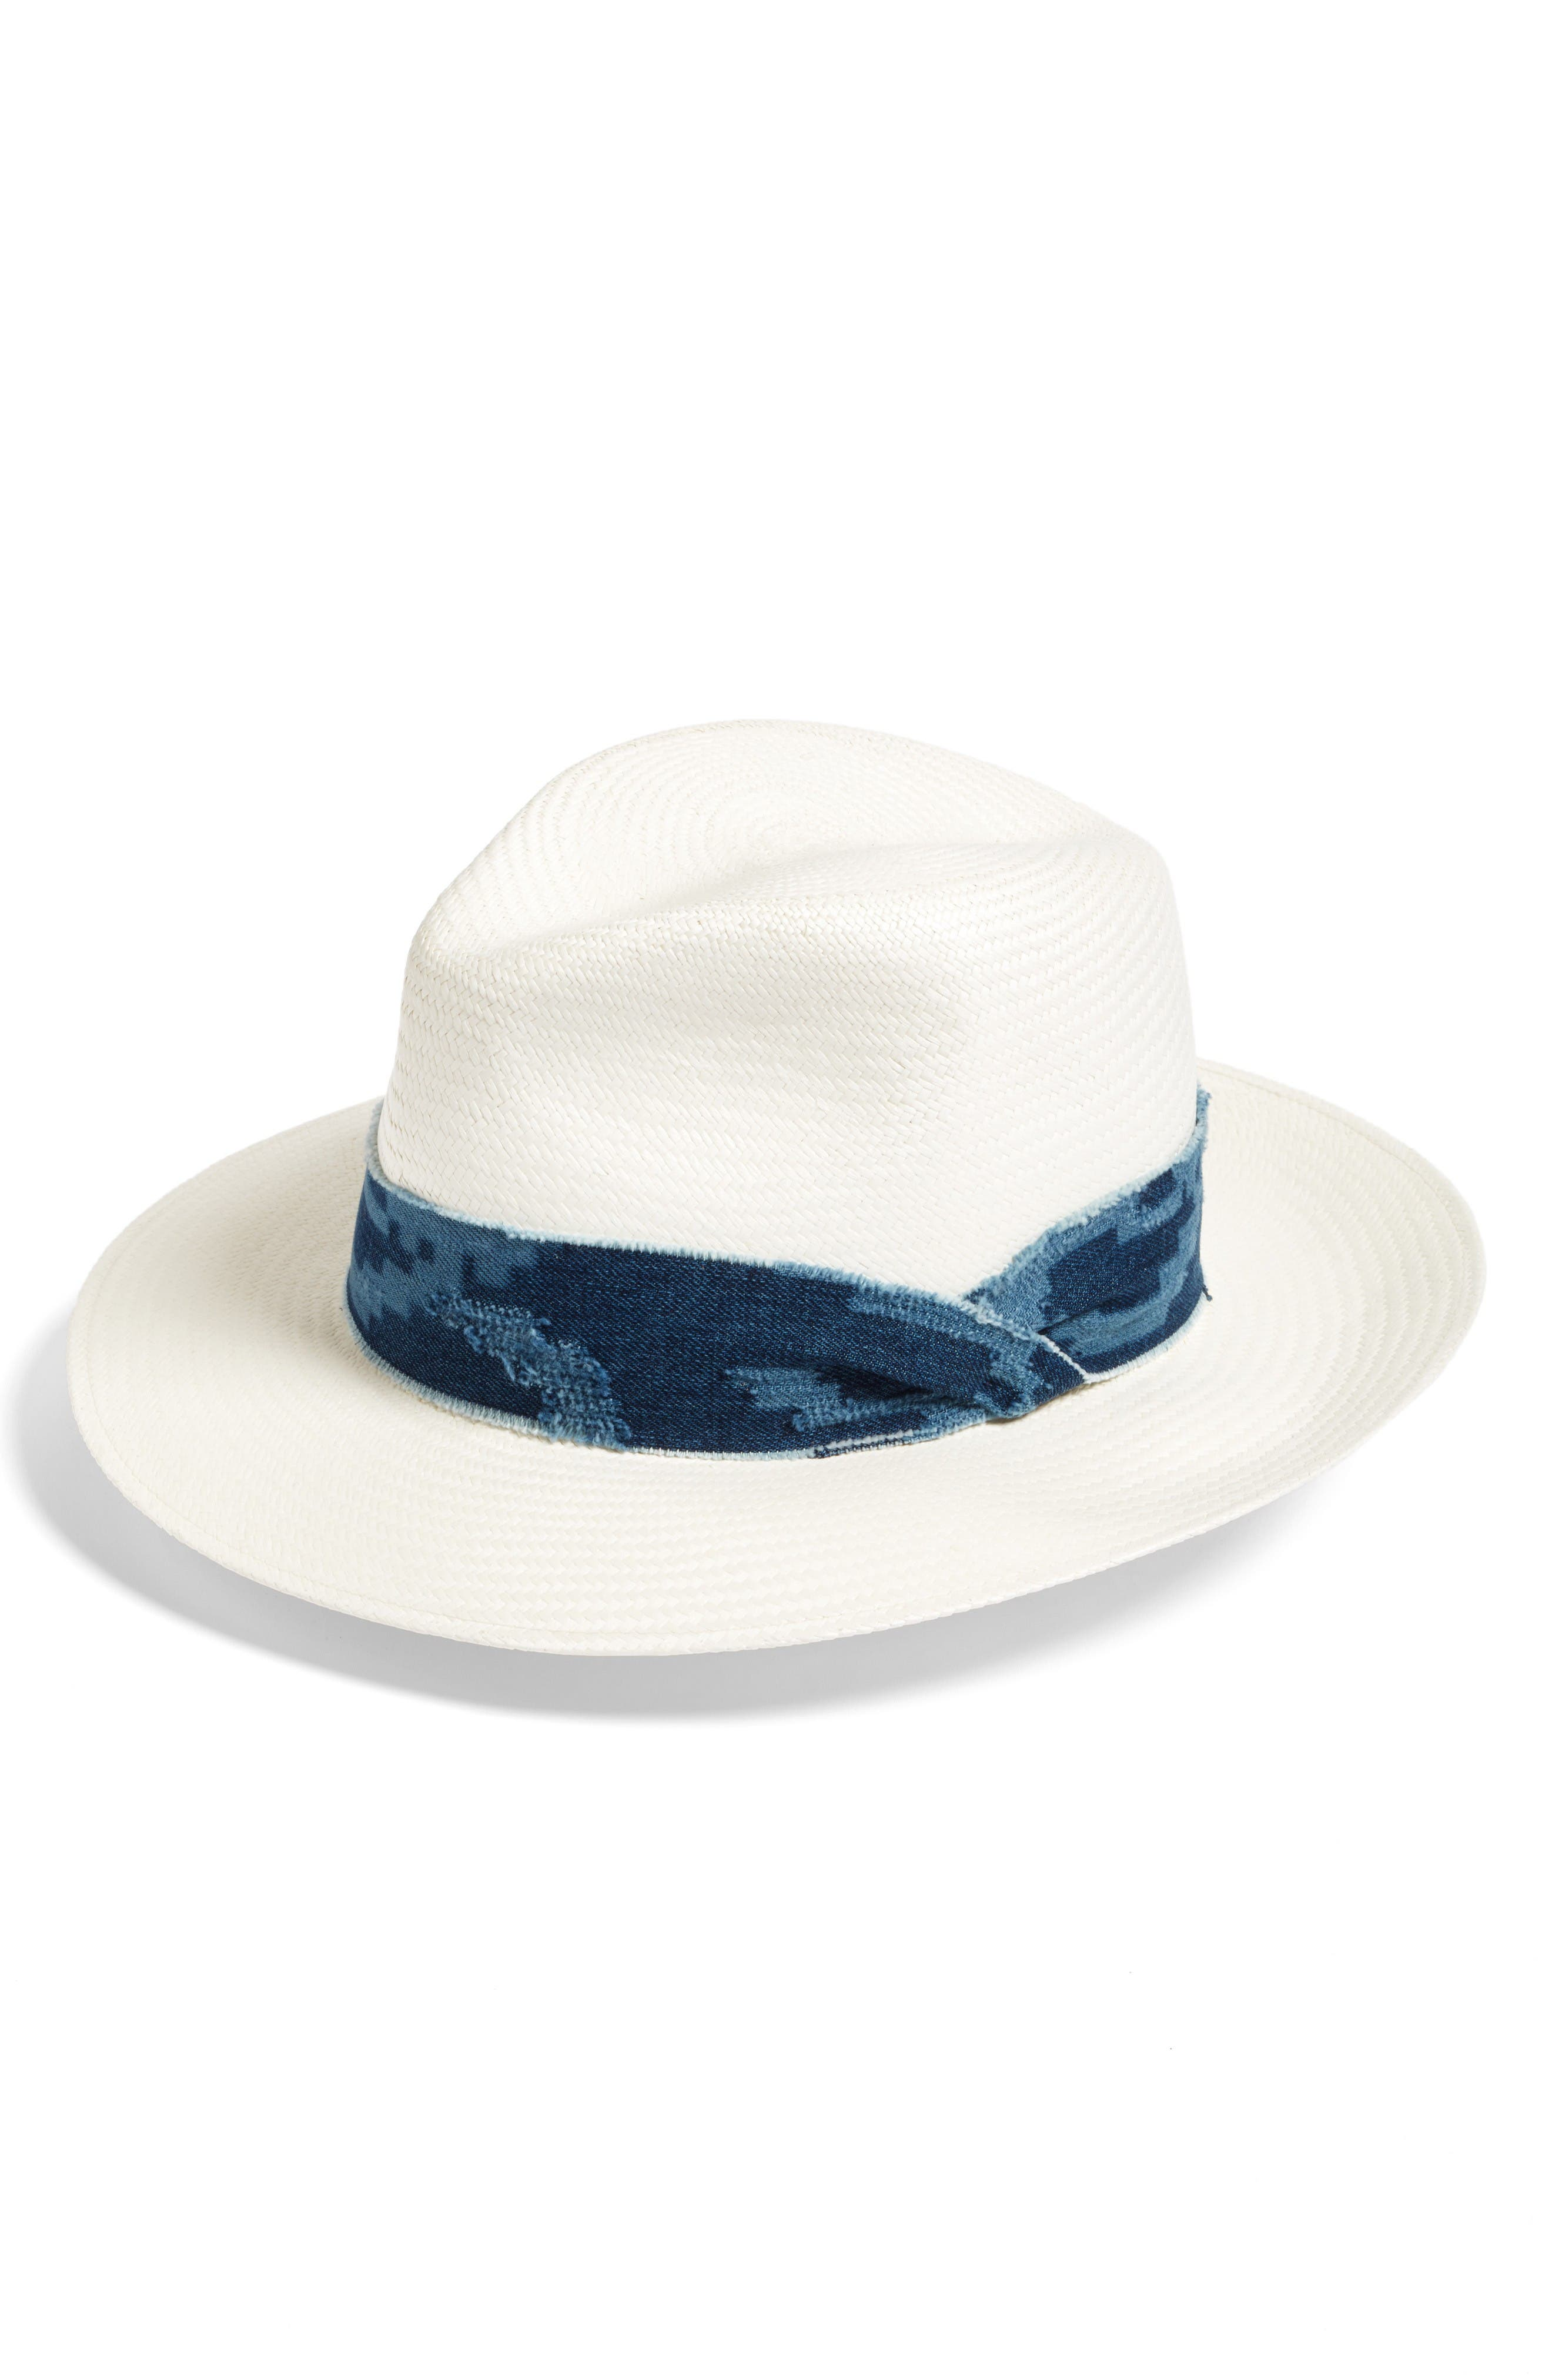 Alternate Image 1 Selected - rag & bone Straw Panama Hat